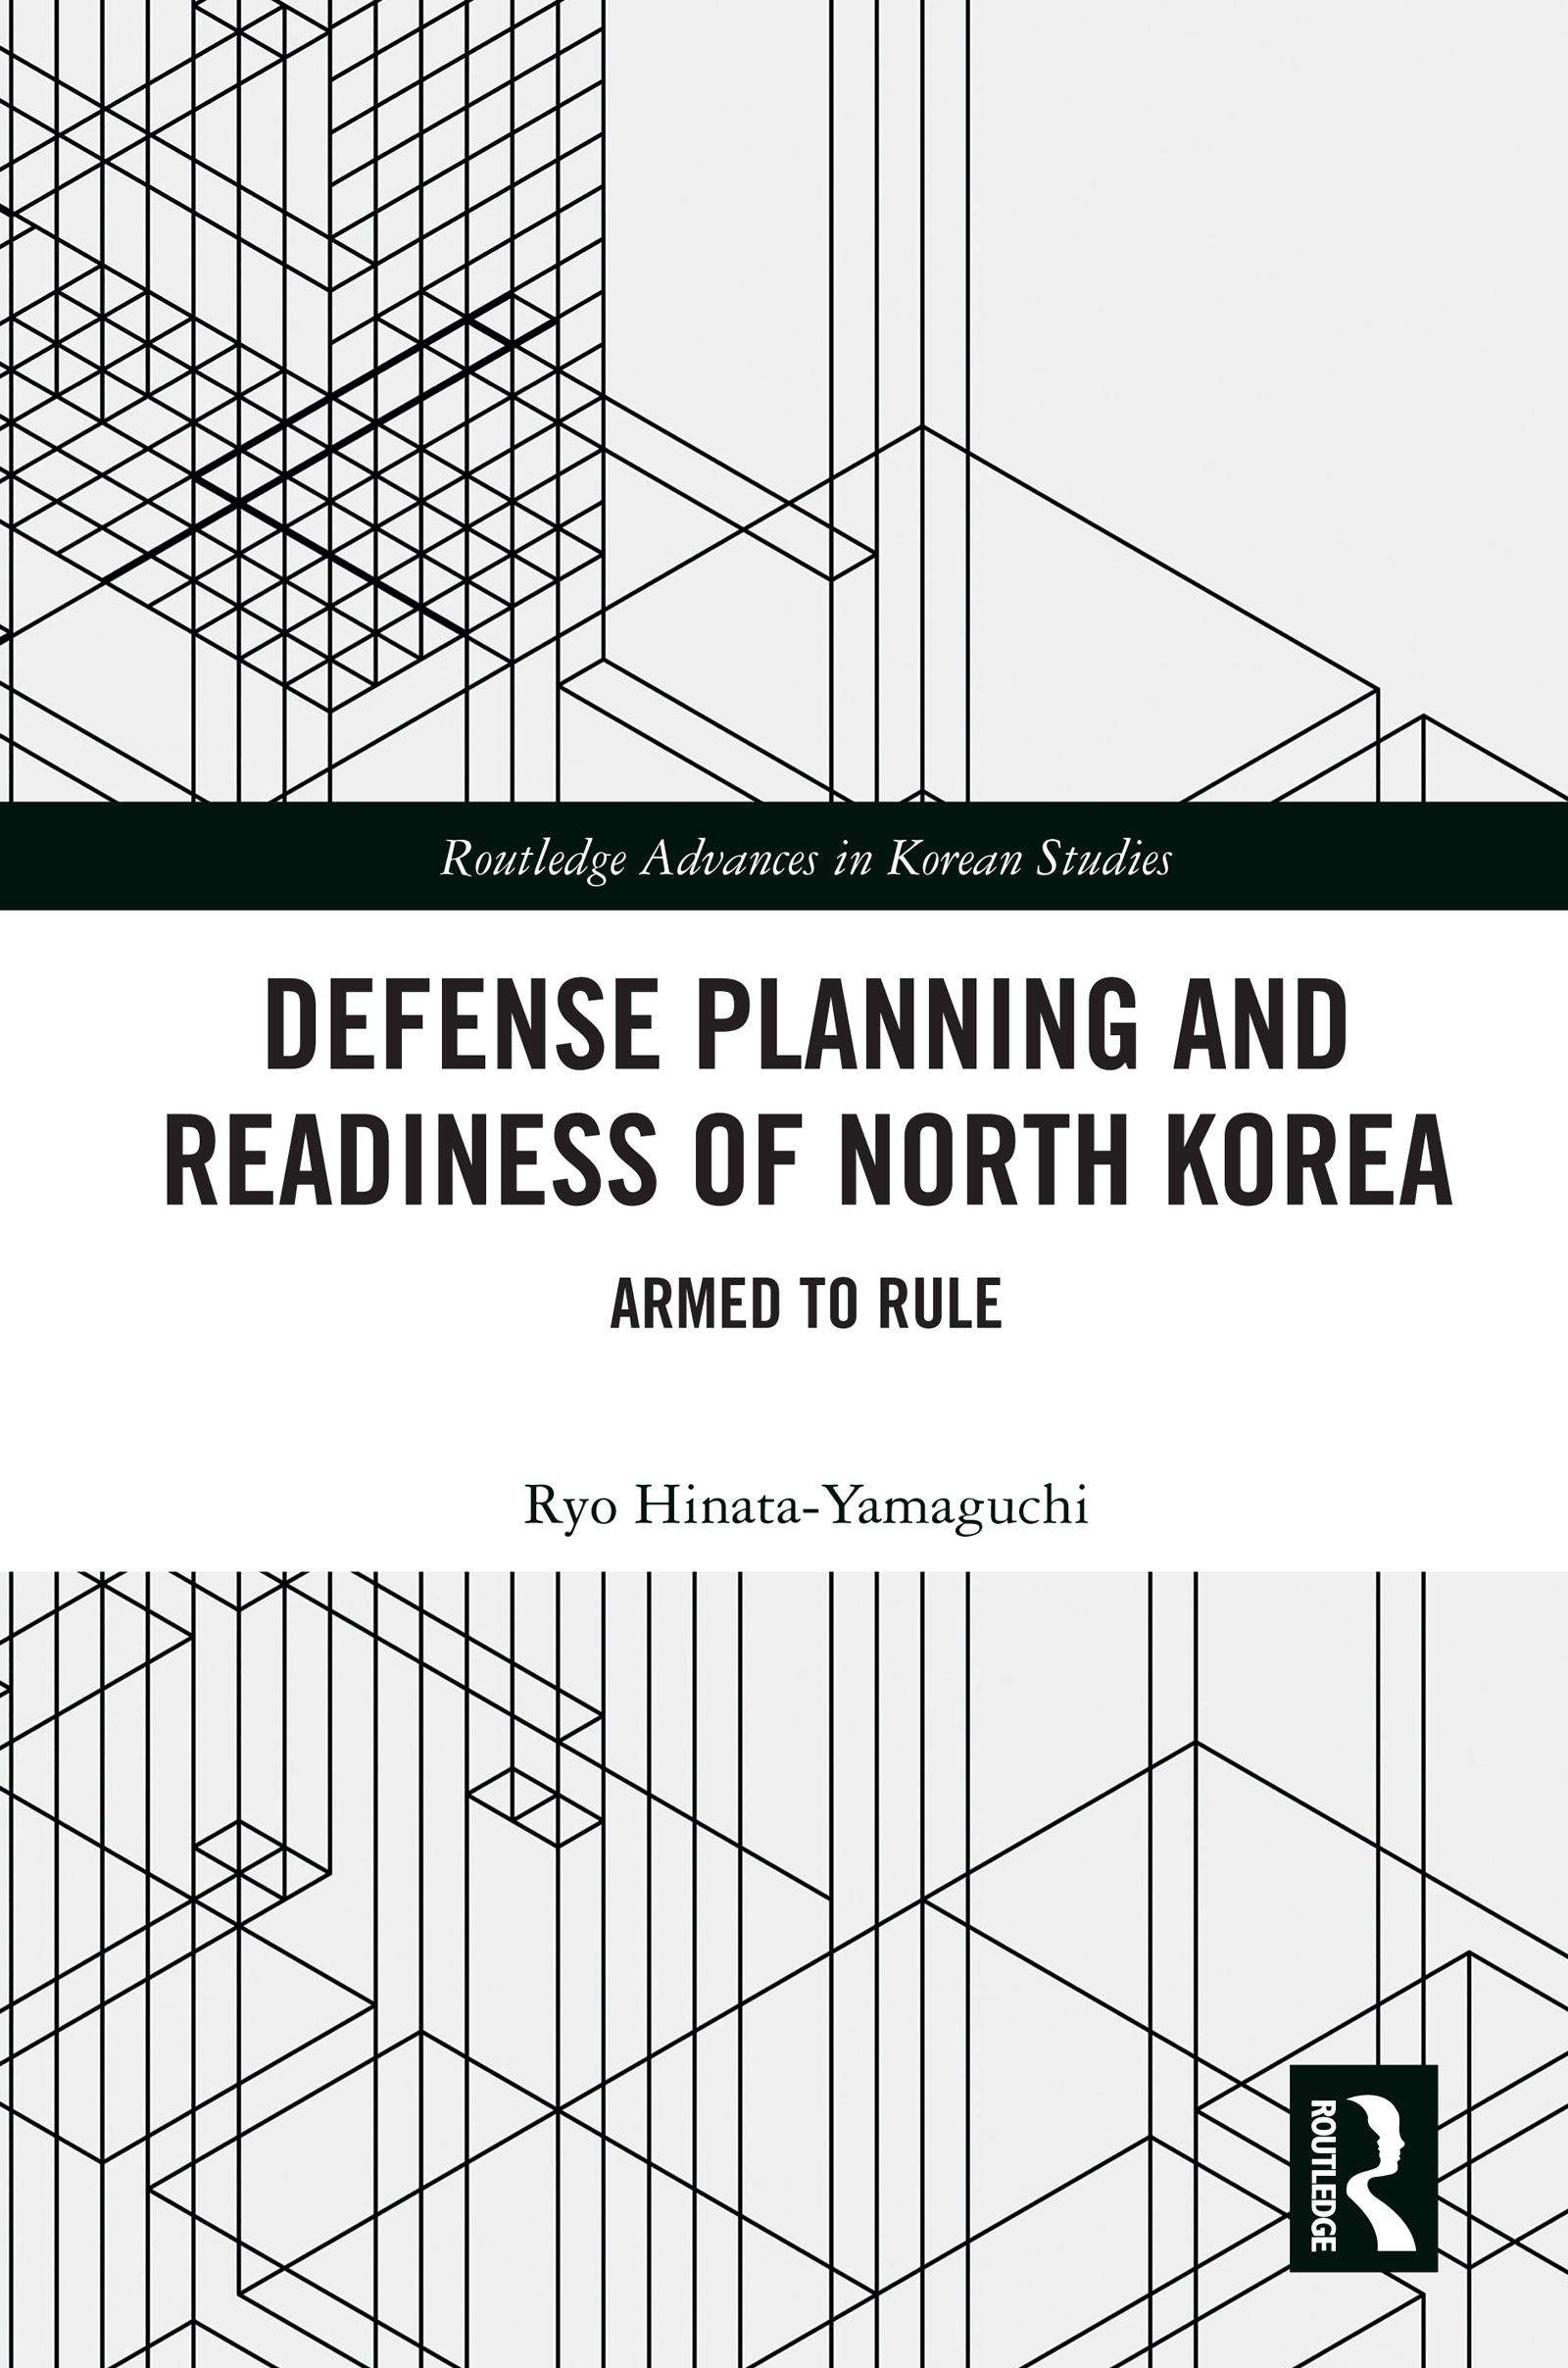 Defense Planning and Readiness of North Korea